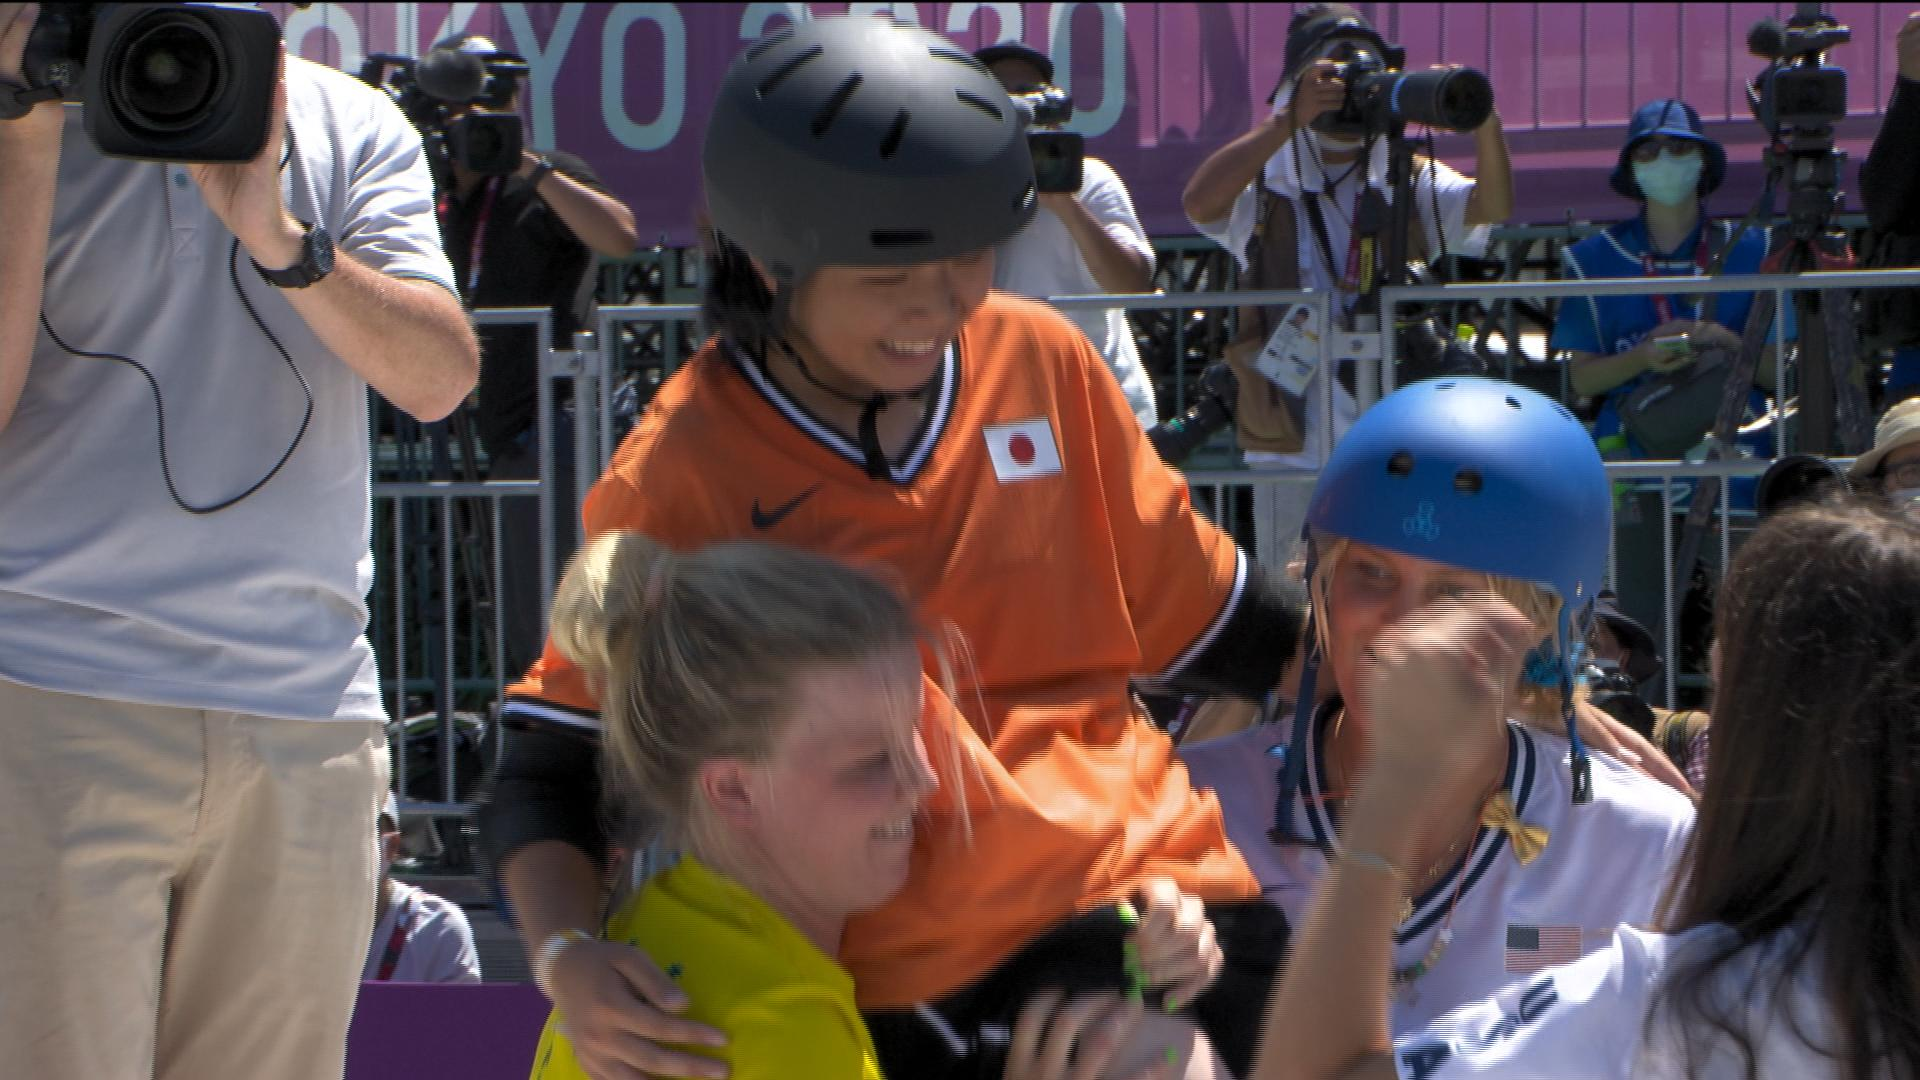 Image for No medal, but a great memory for skateboarder Okamoto